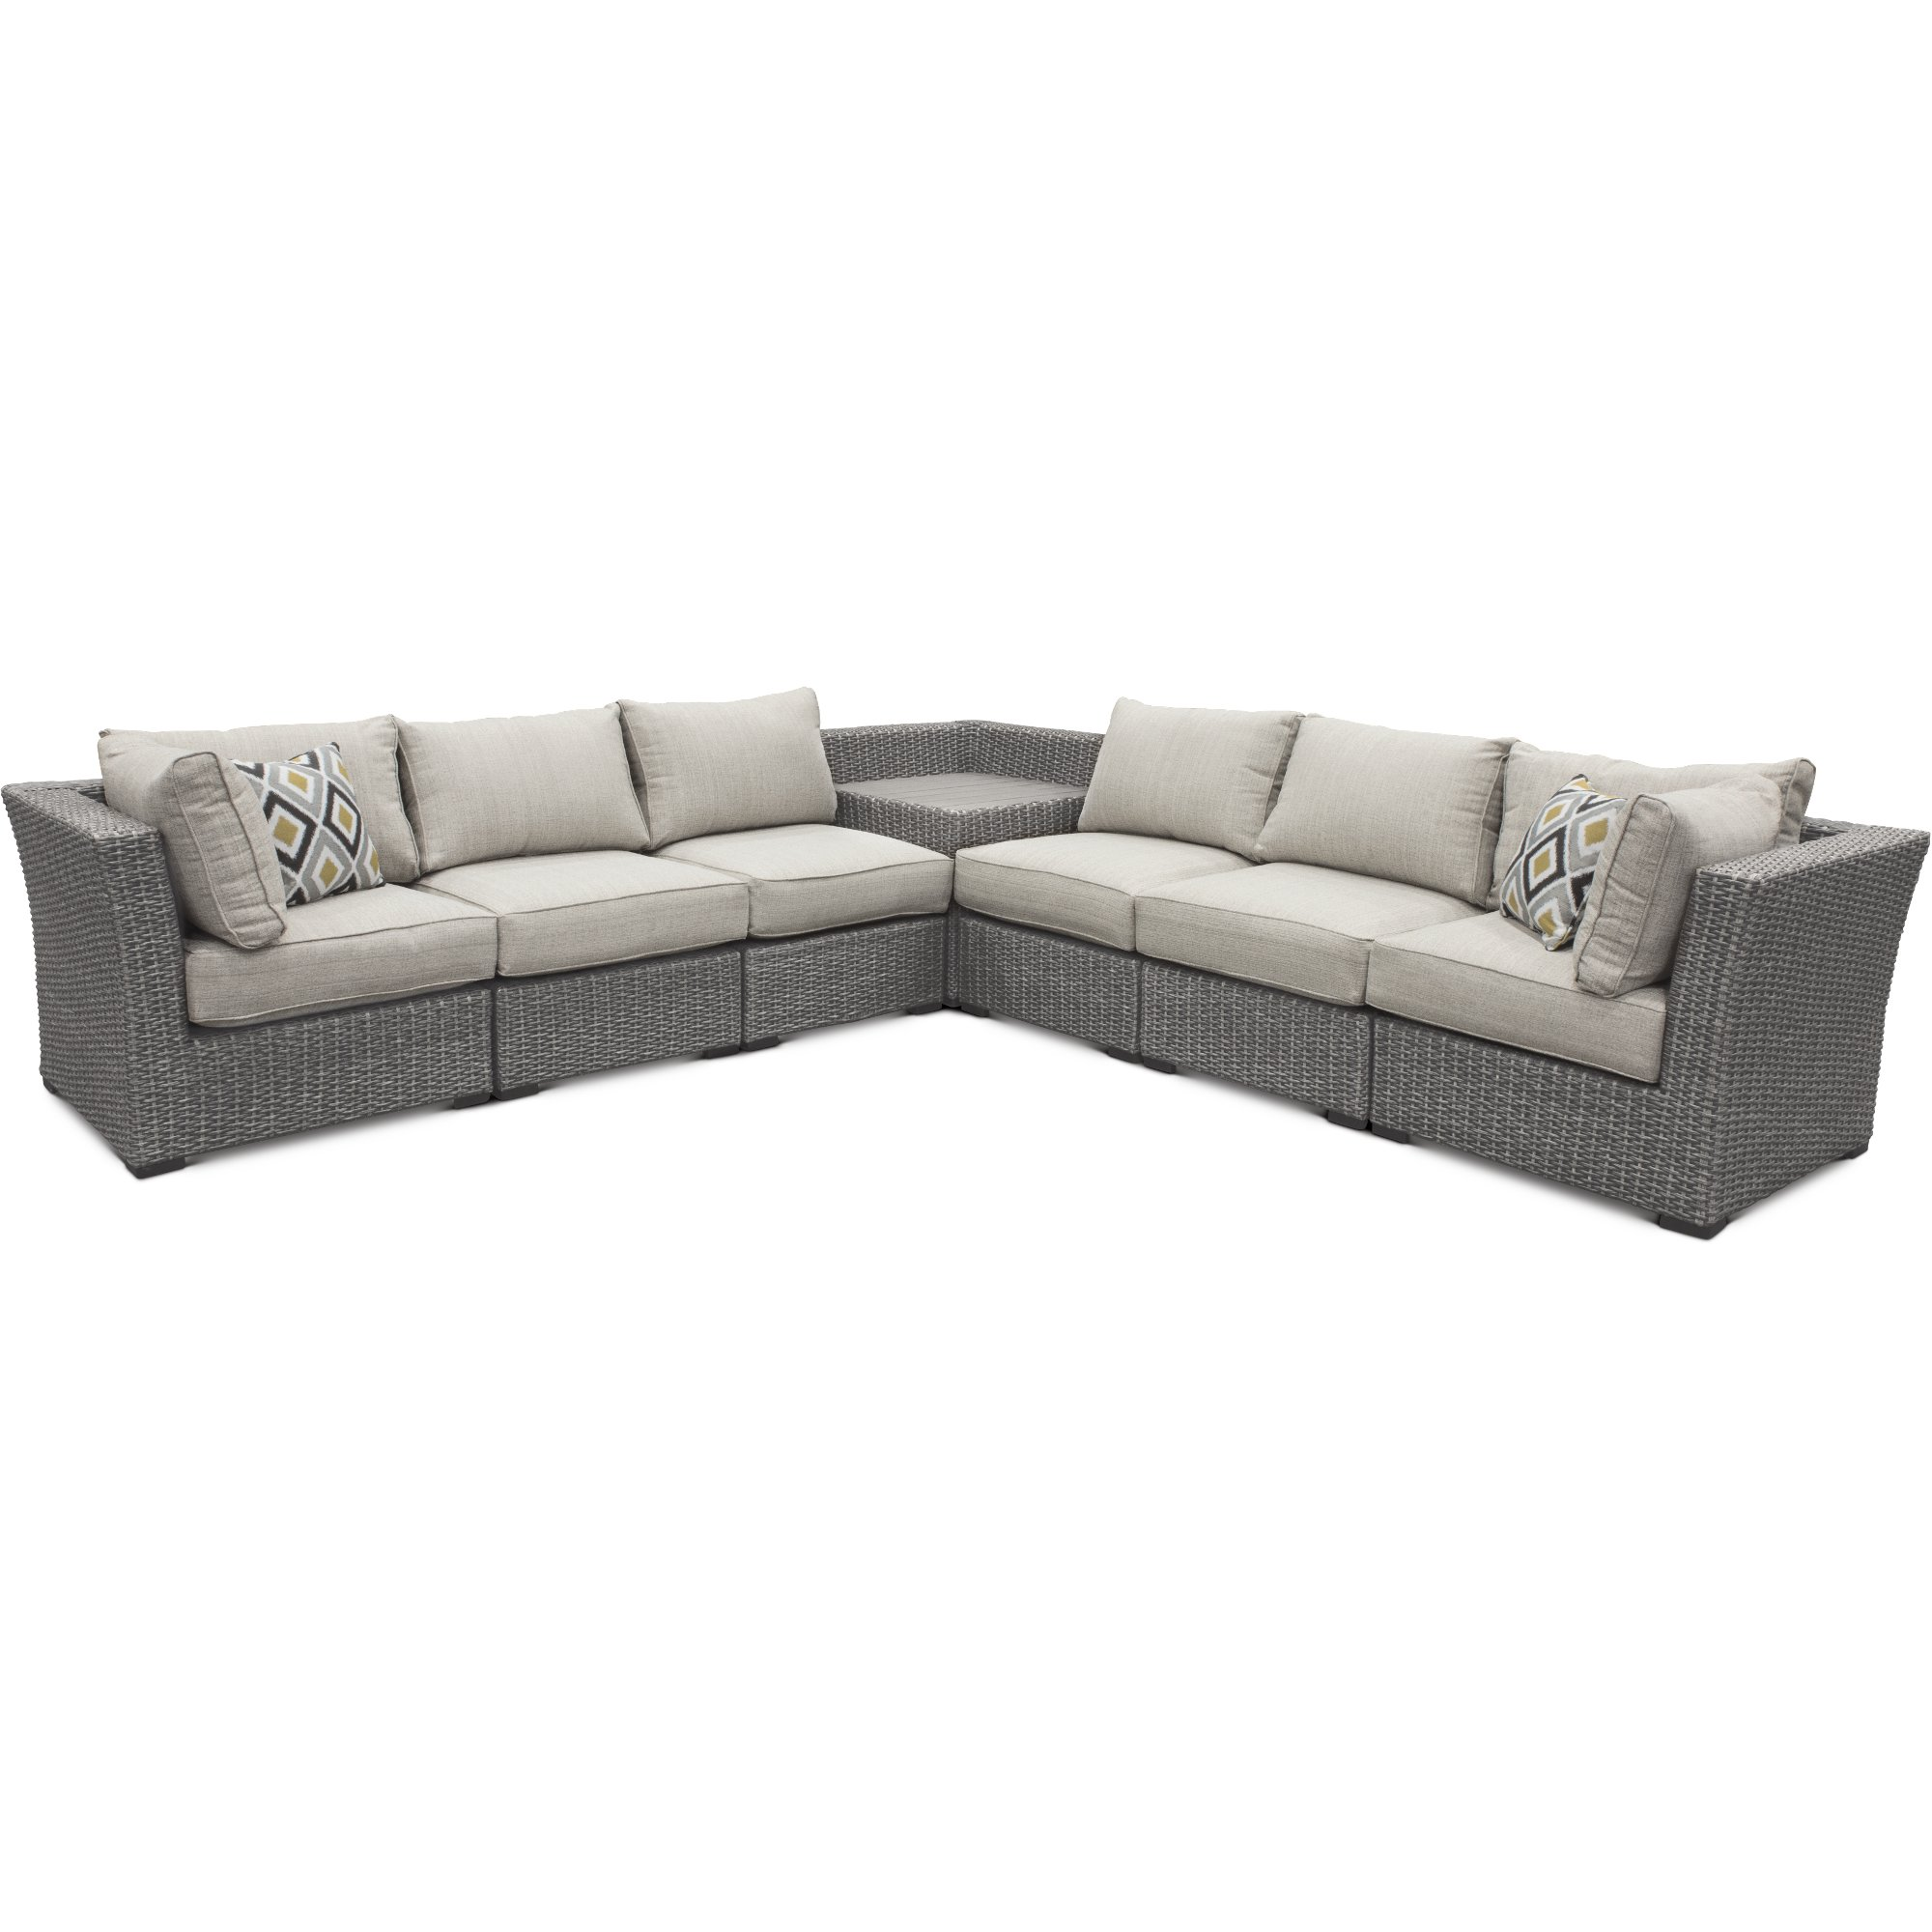 Superb Gray 7 Piece Outdoor Patio Sectional Sofa Tahoe Ocoug Best Dining Table And Chair Ideas Images Ocougorg